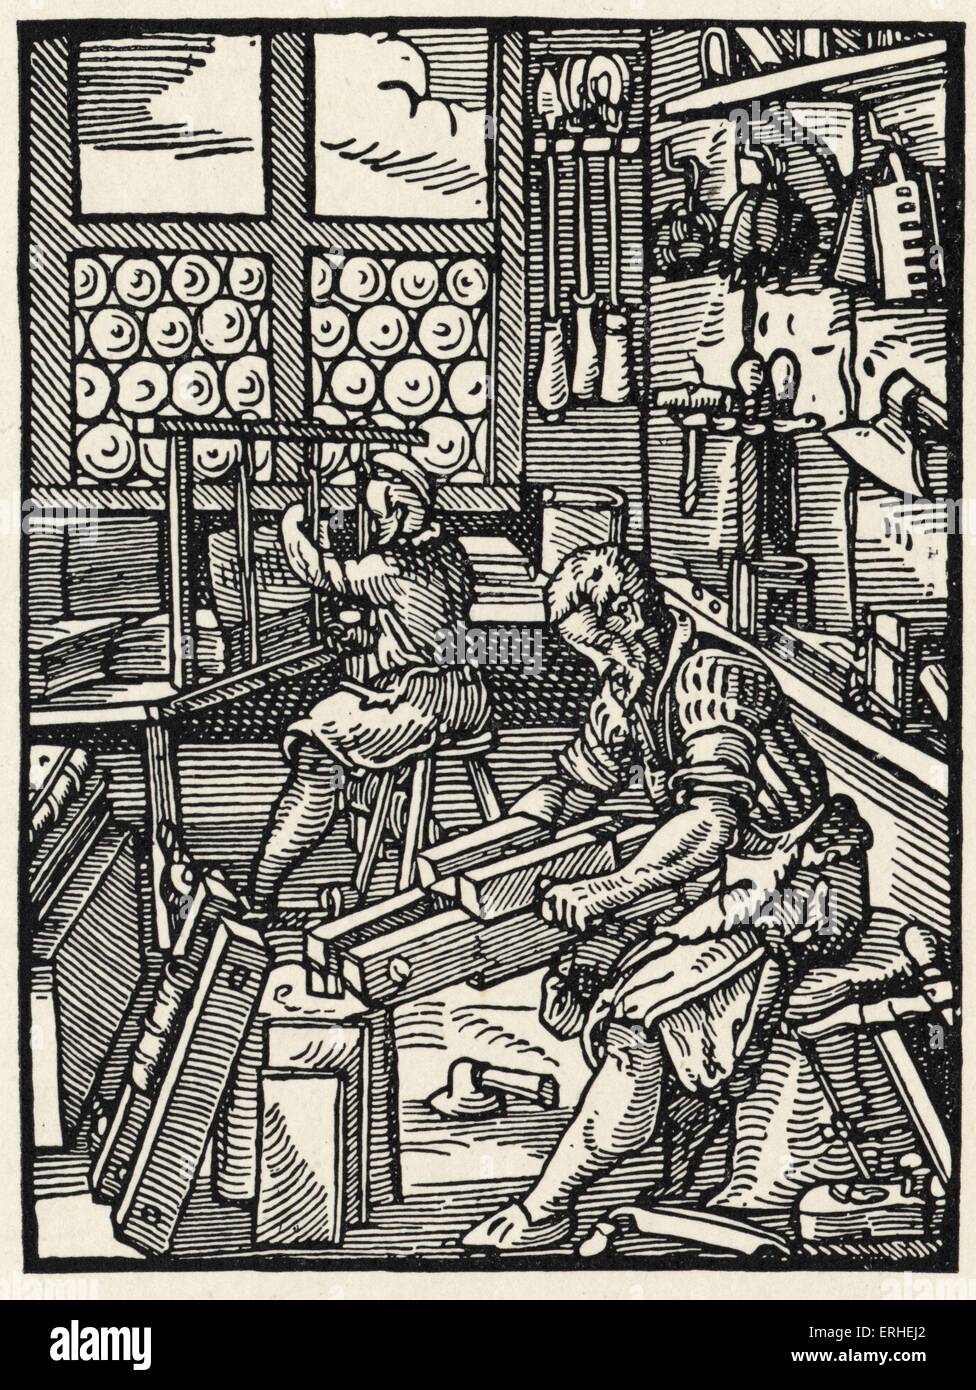 Bookbinding in the 15th century - illustration from 'Stunde und Handwerker' by Jobst Amman. Book production. - Stock Image